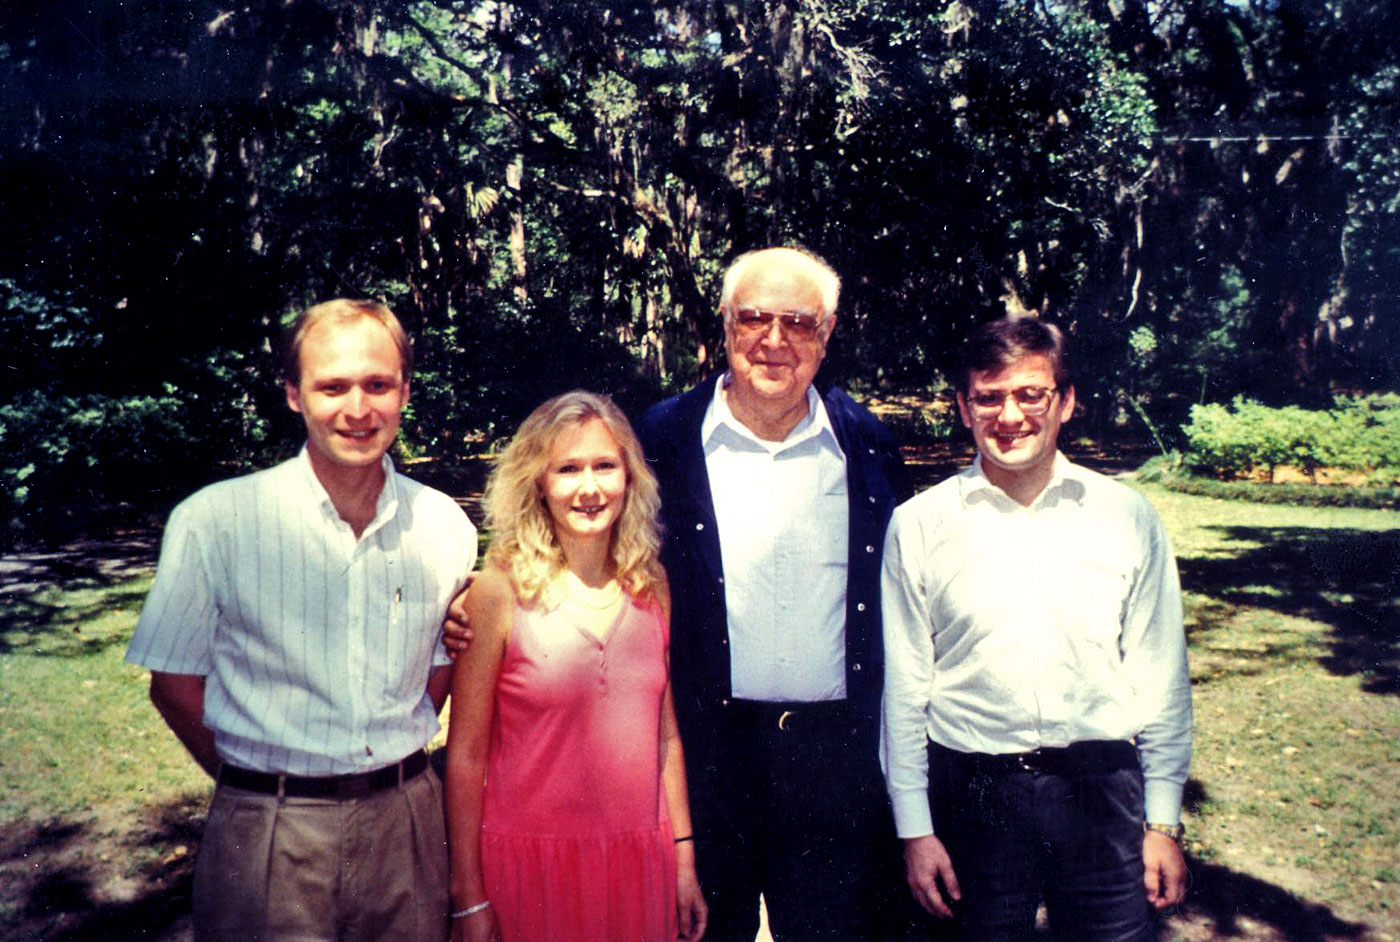 Detinov with Russian scholars Ilya Gaiduk, Svetlana Savranskaya, and Vlad Zubok, Musgrove conference, May 1994